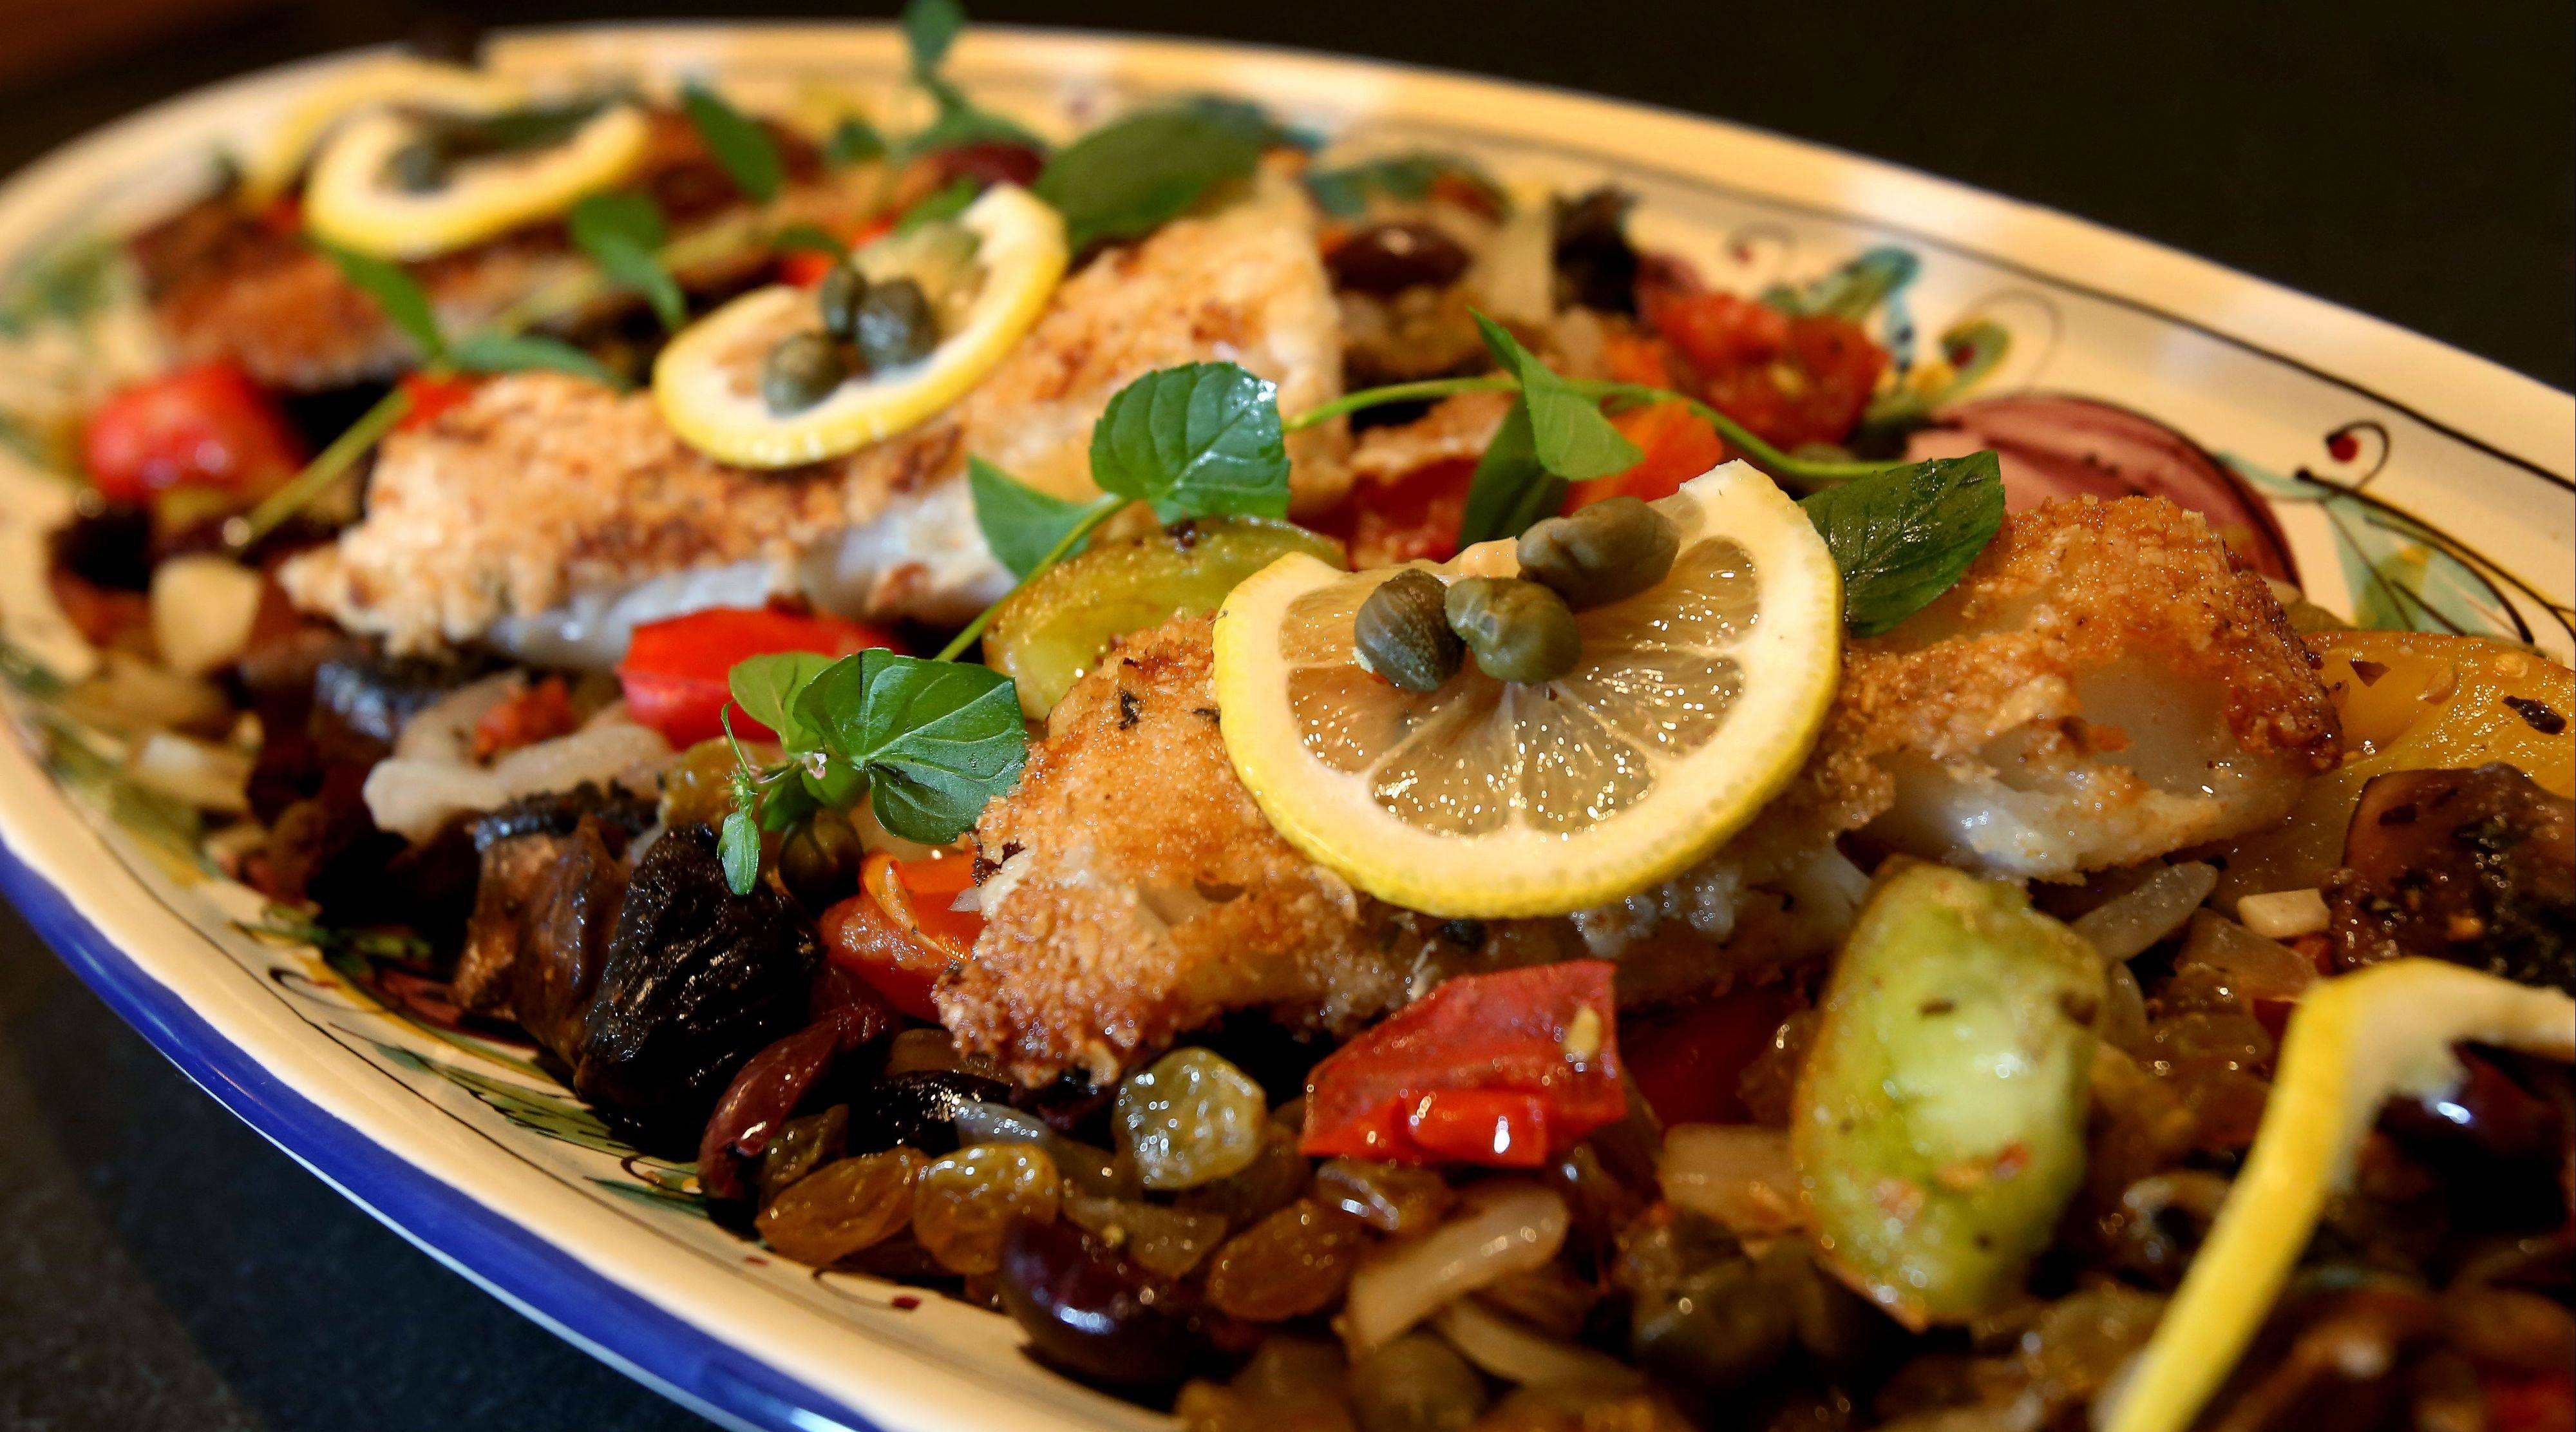 In her Mediterranean-inspired dish, Lori Motyka combined currants and mushrooms into caponata that she serves with oat-crusted cod.